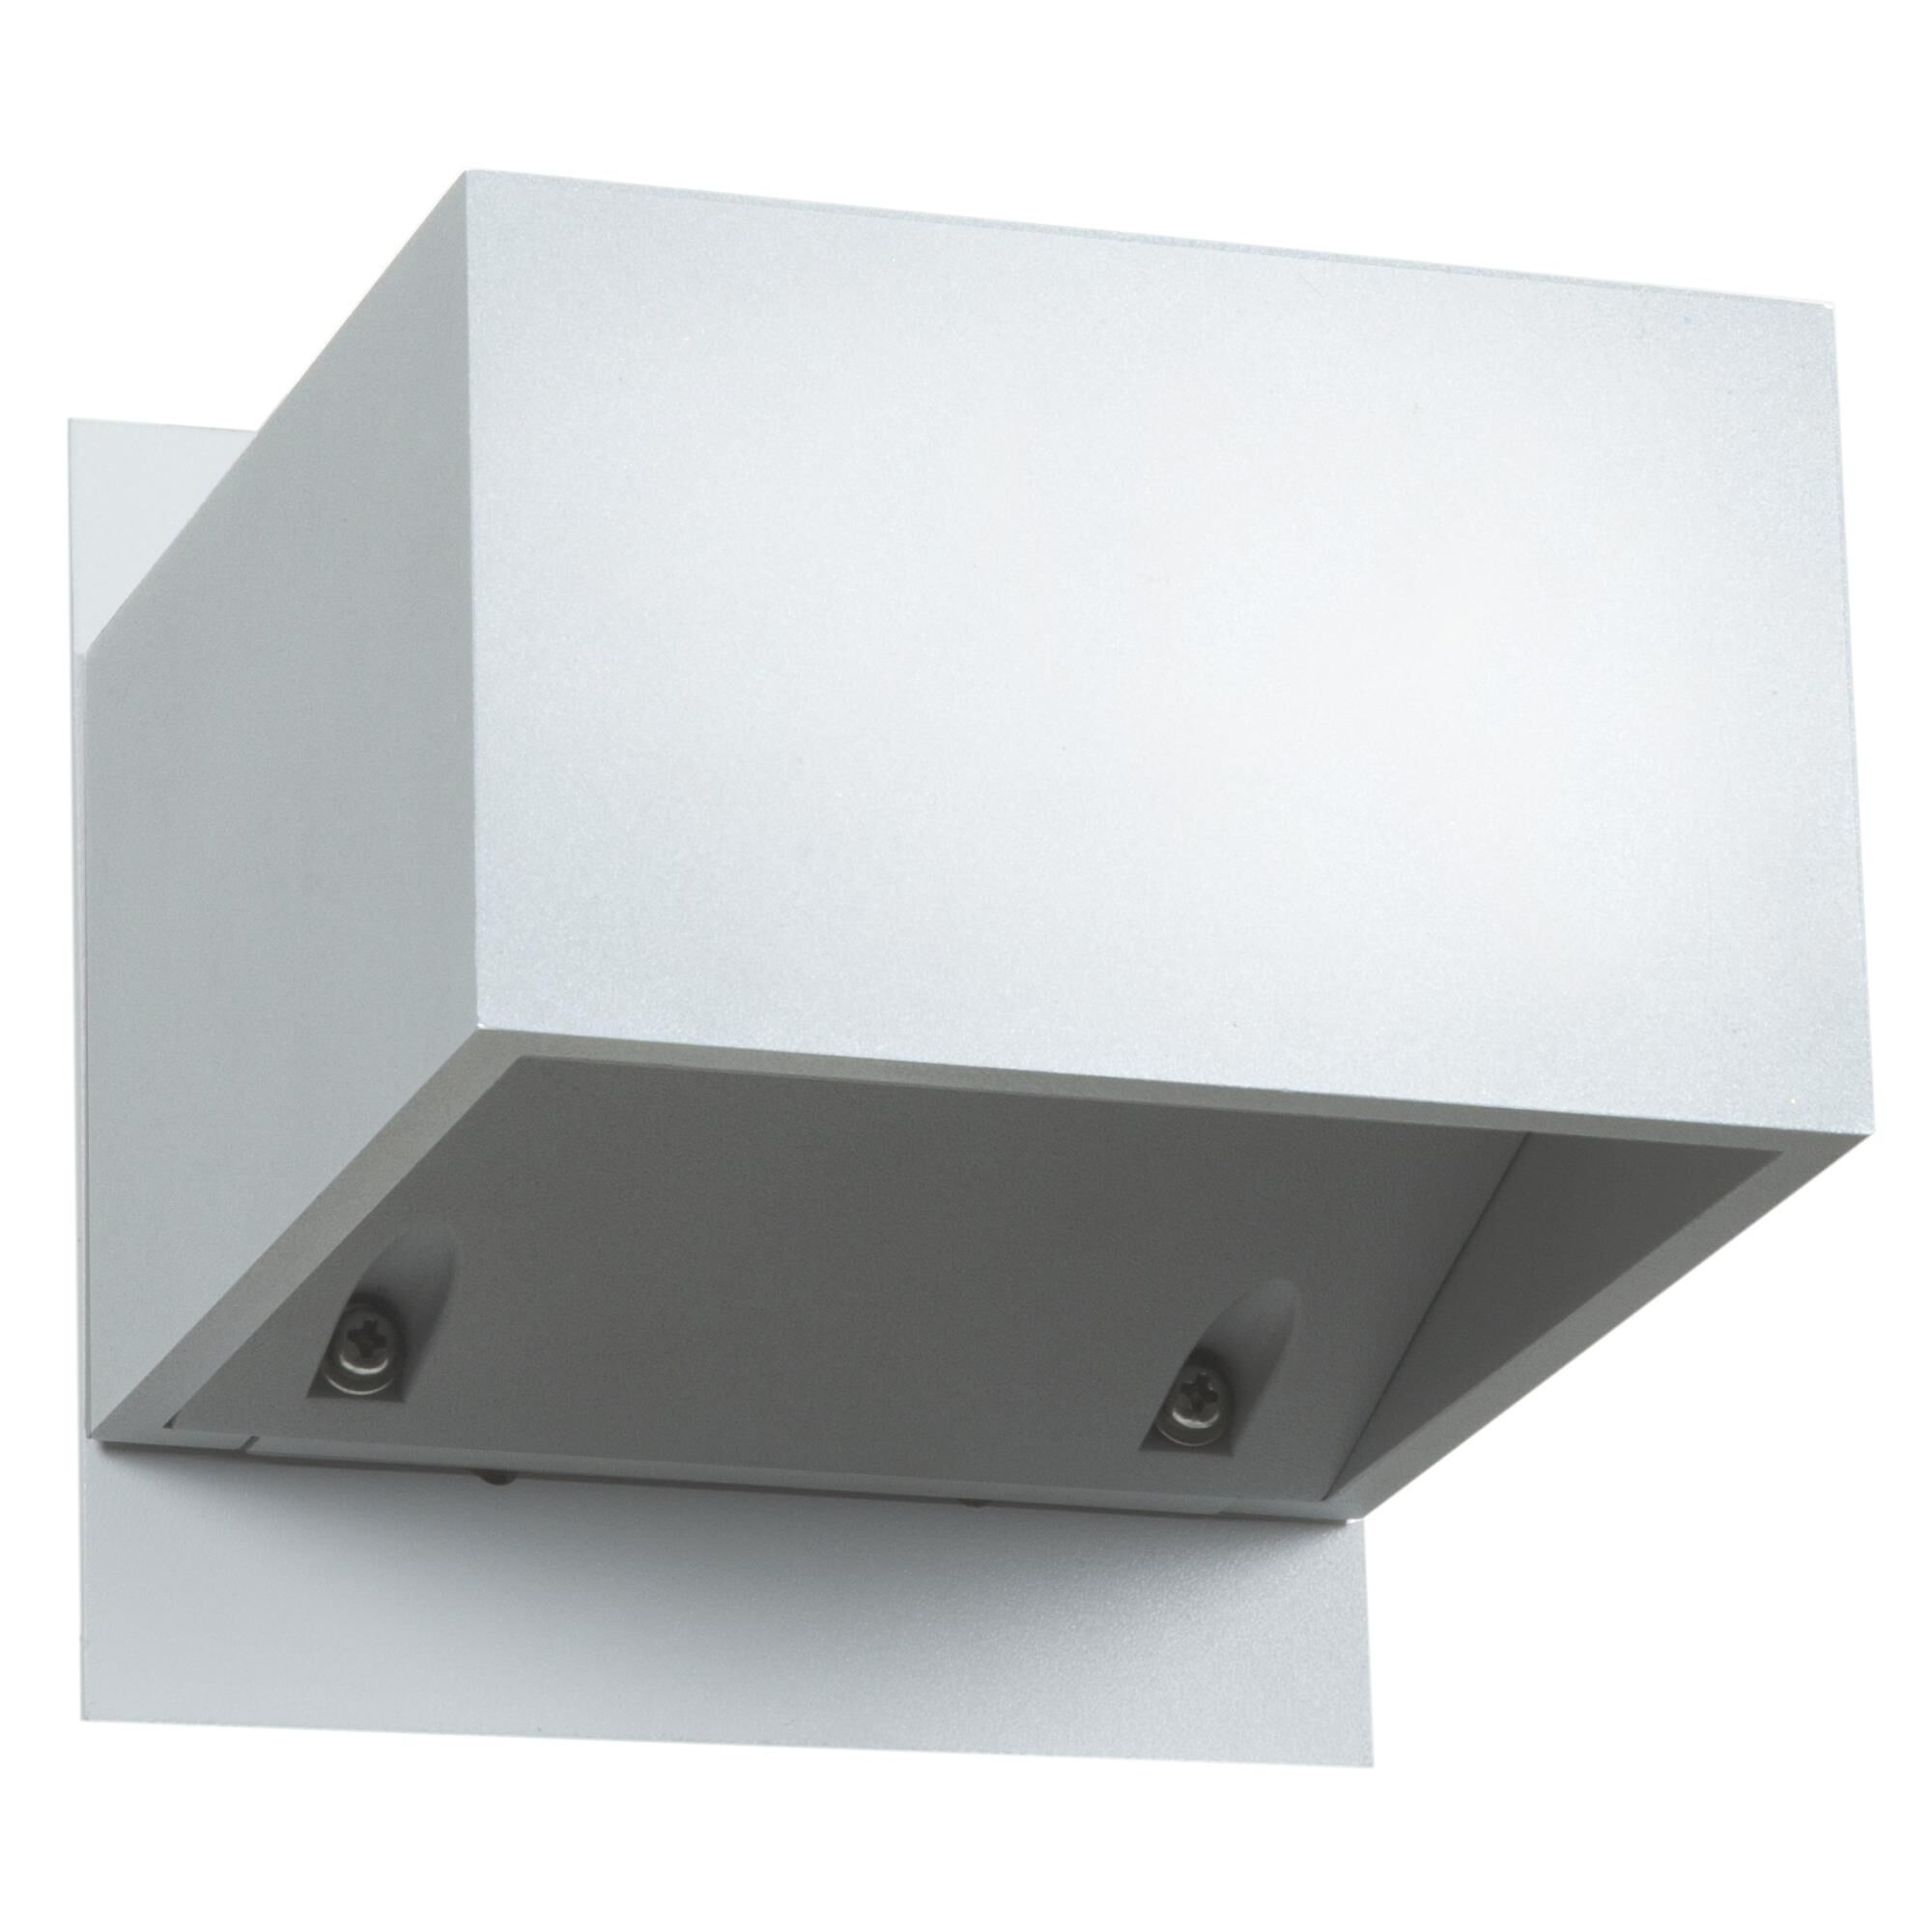 Access Lighting Square 3 Inch Tall 1 Light LED Outdoor Wall Light Square 20398LEDMG WH Modern Contemporary